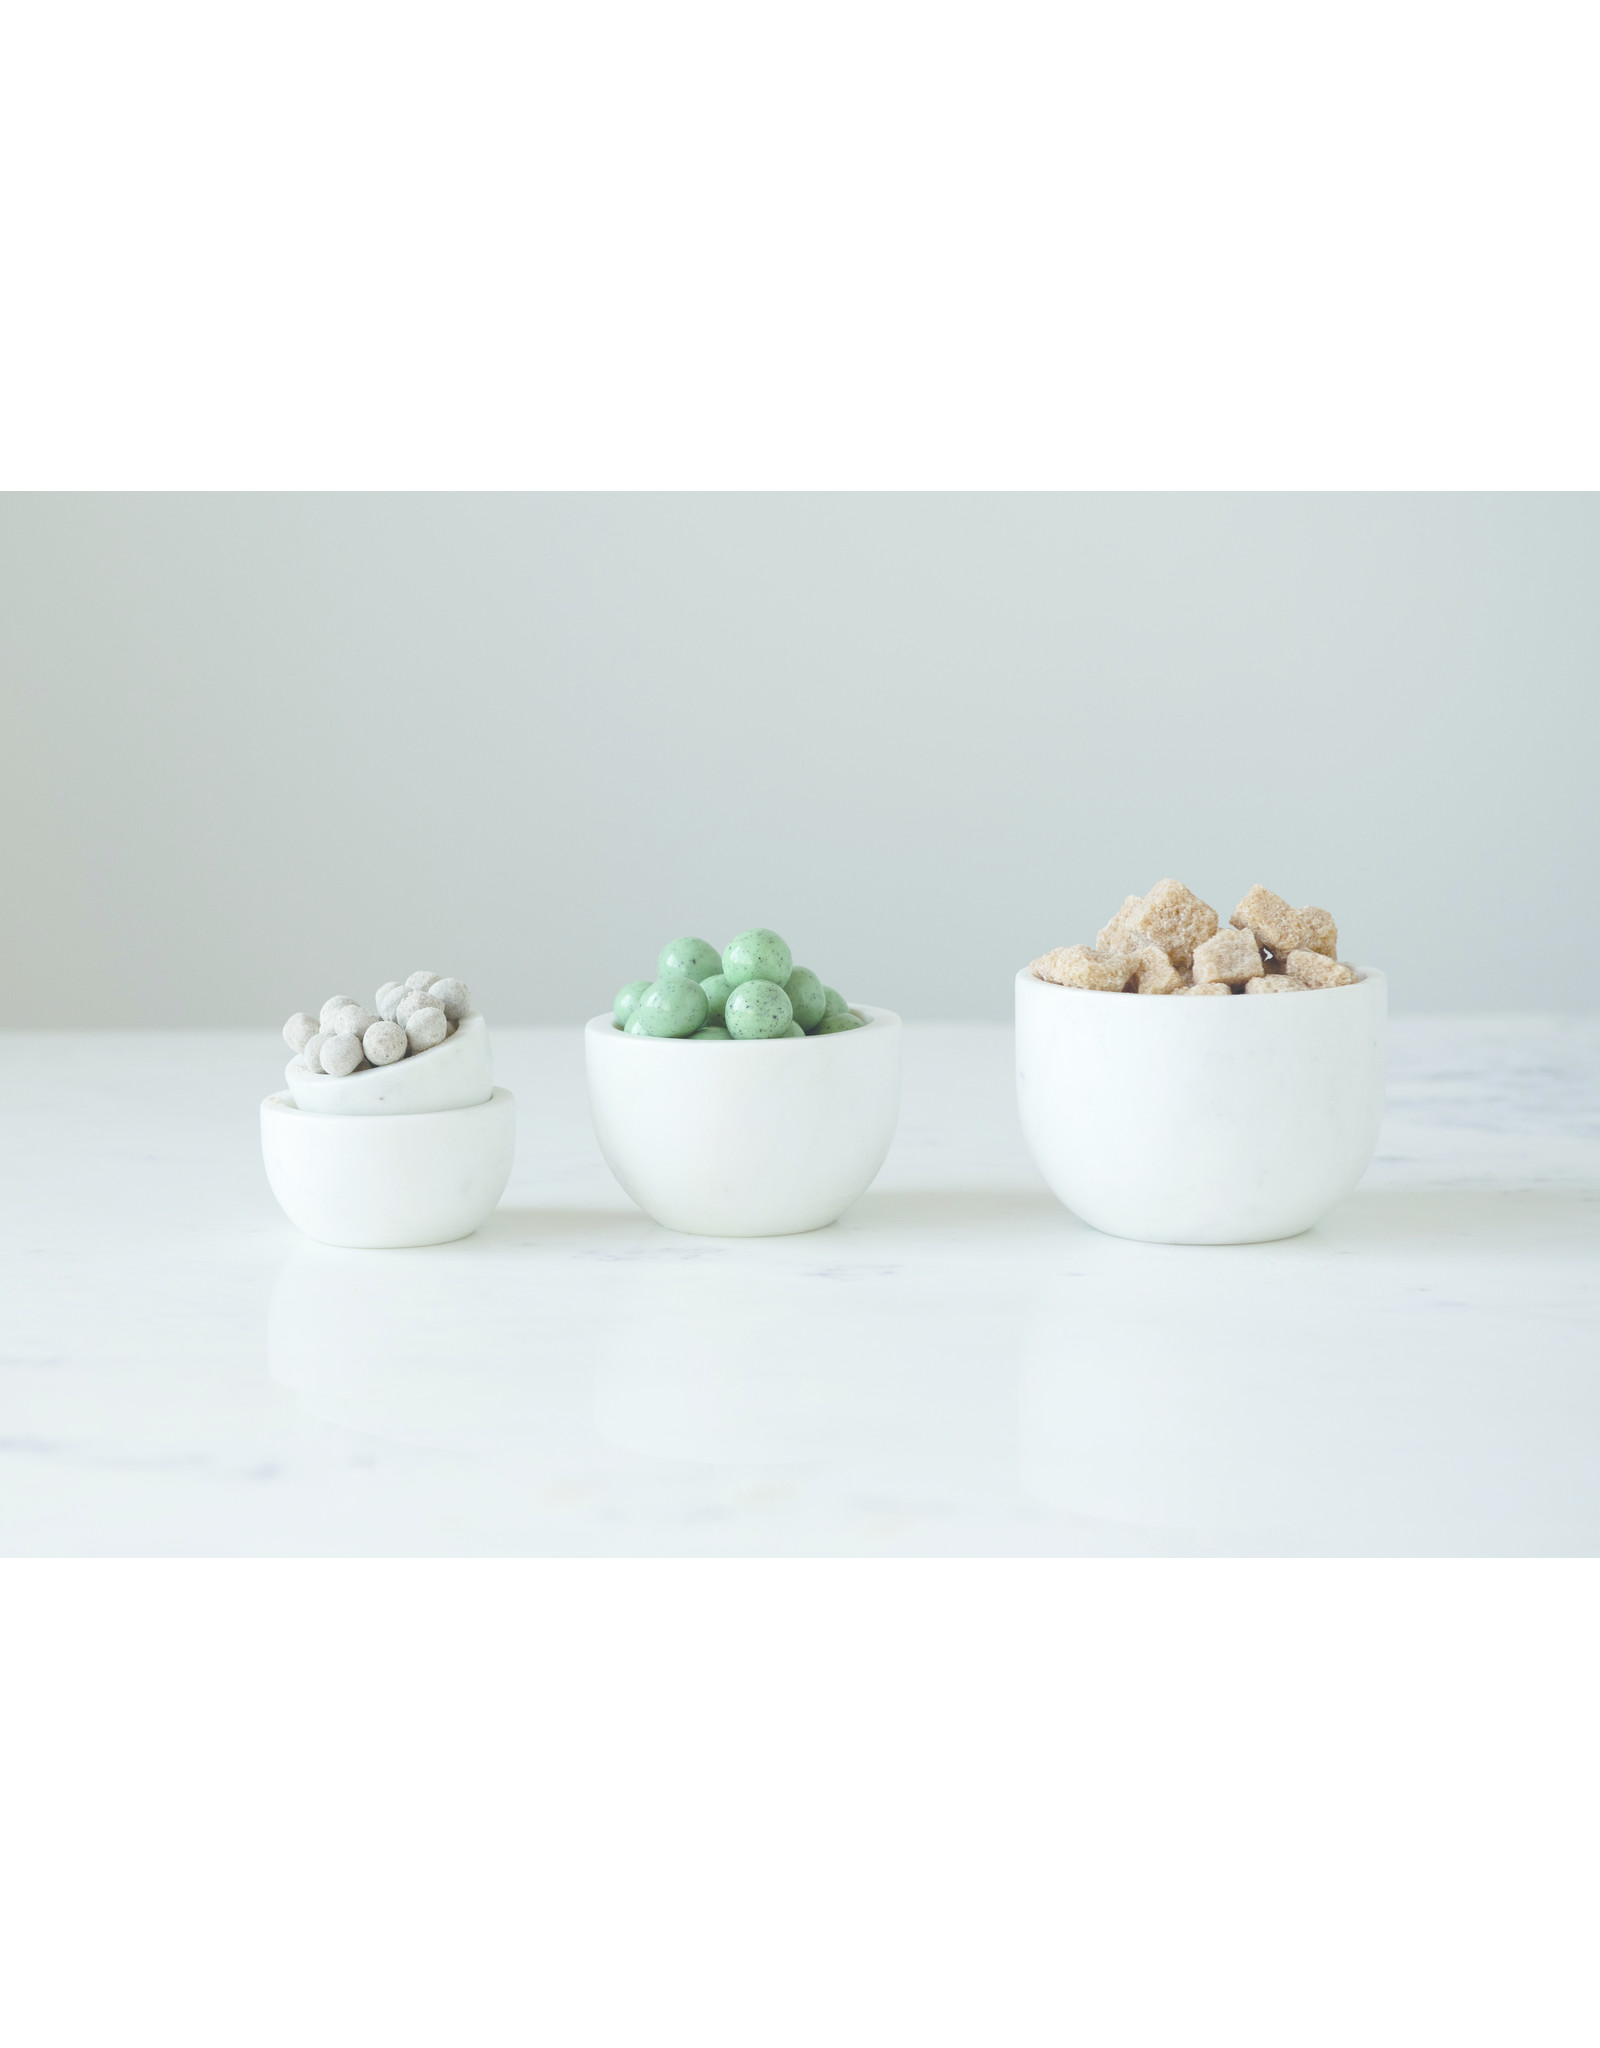 Website Set of 4 White Marble Bowls